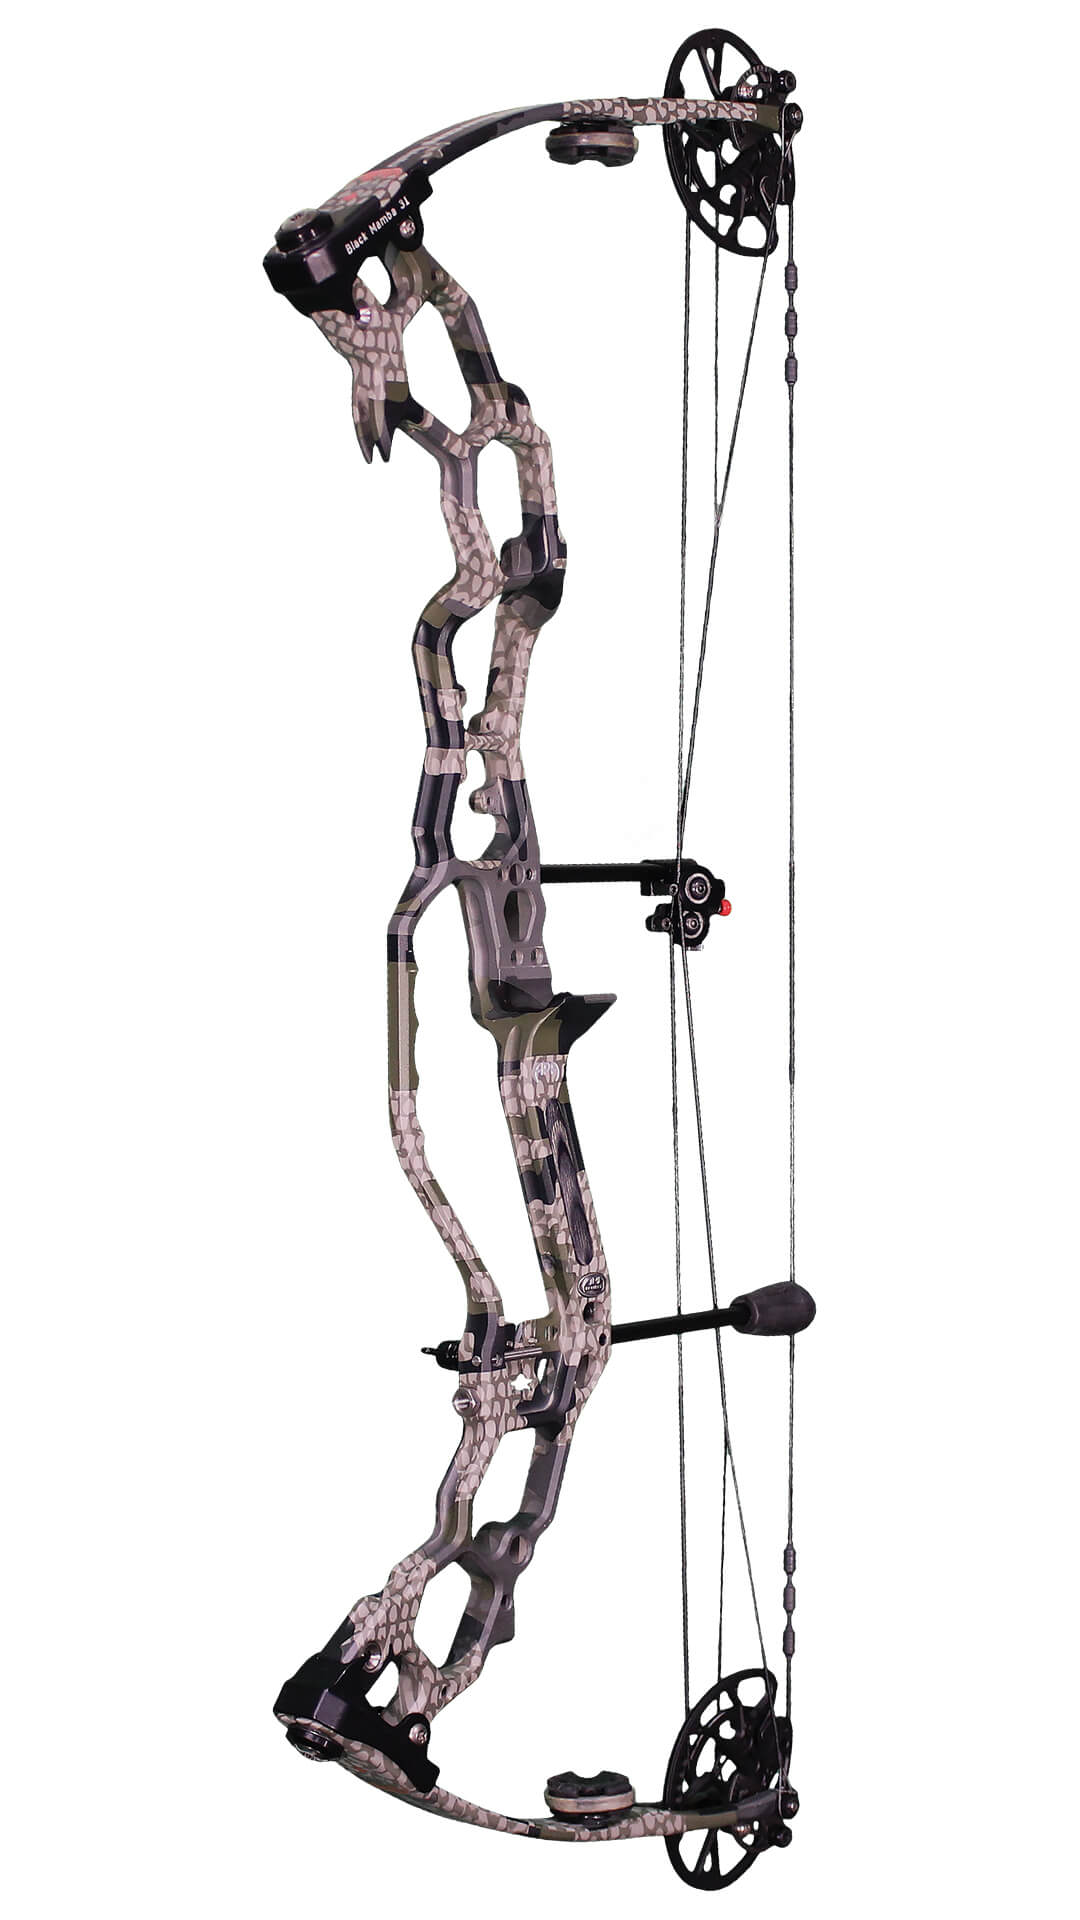 APA Black Mamba 31 Compound Bow